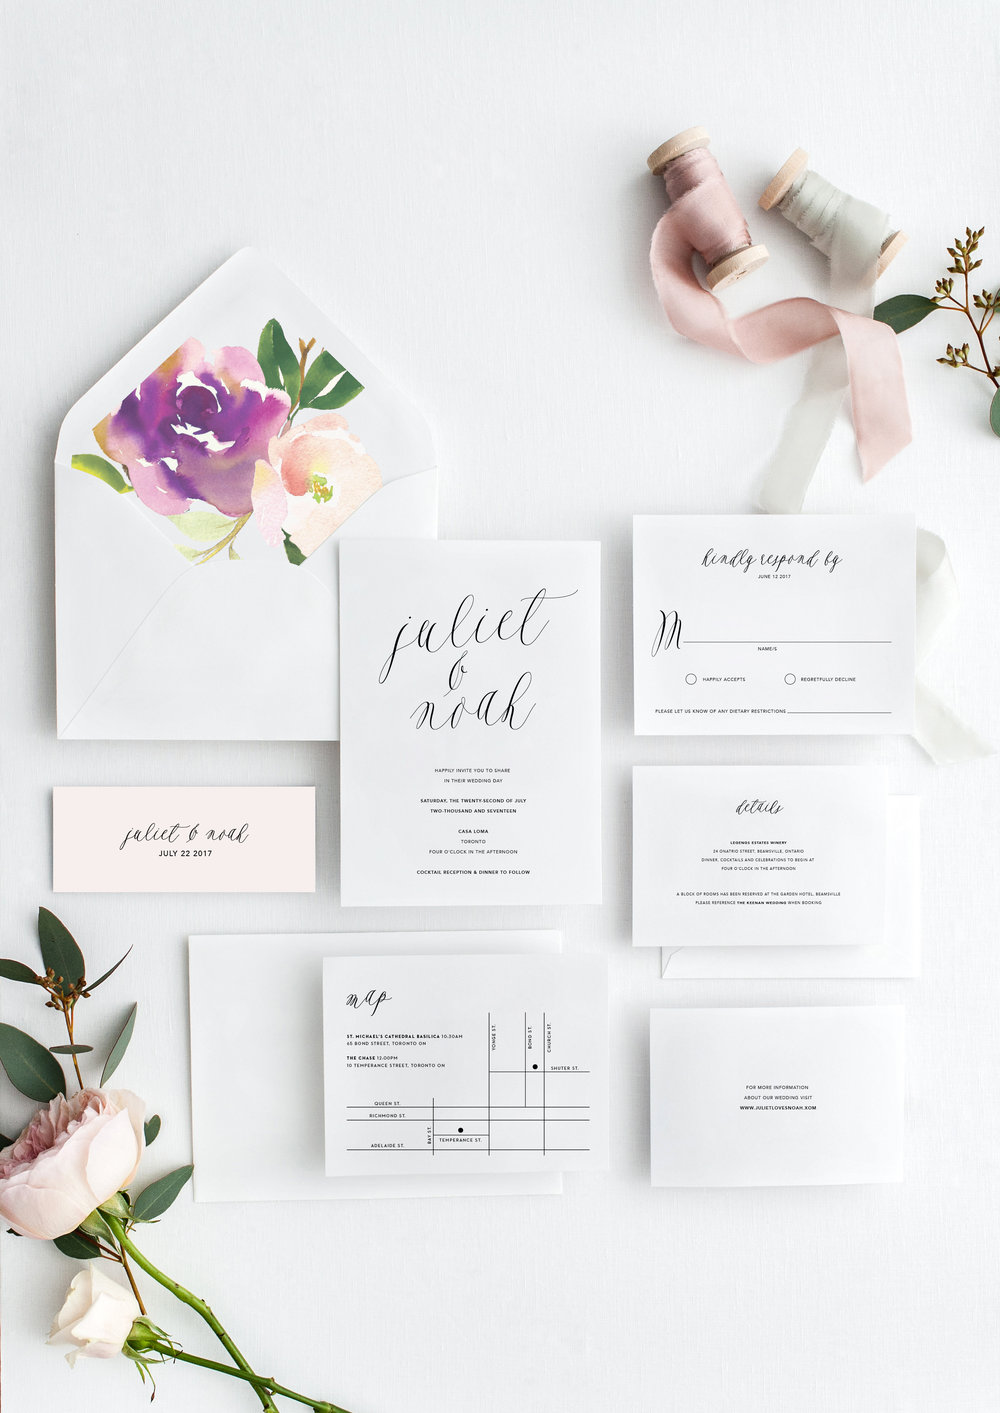 Juliet and Noah modern calligraphy wedding invitations